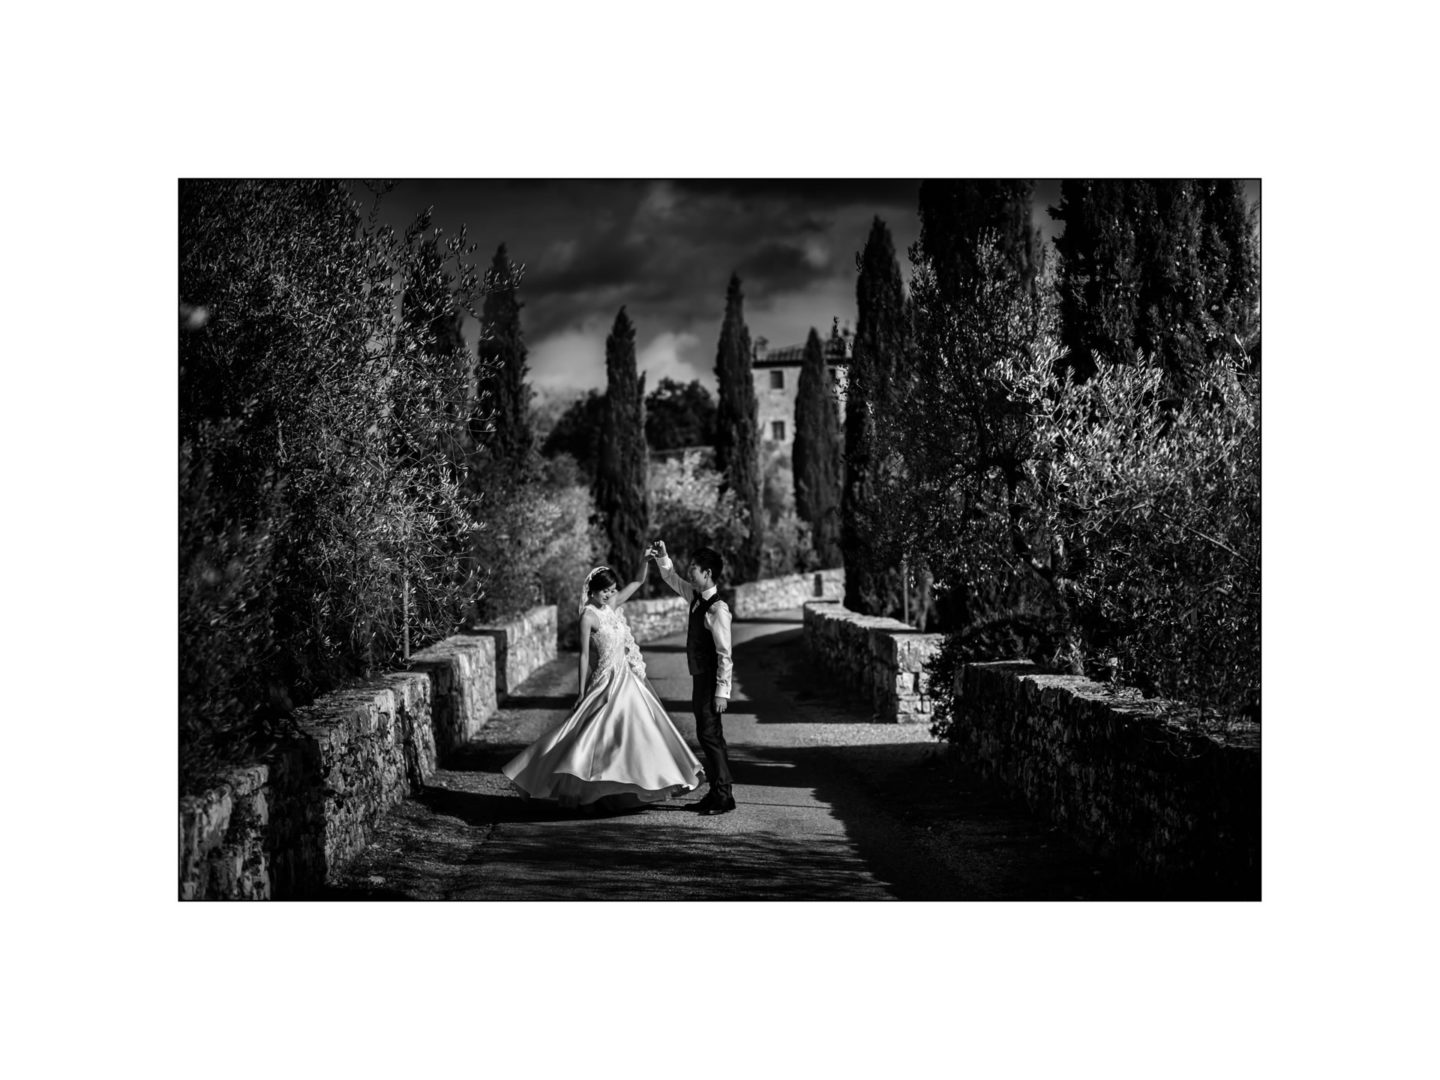 castello-di-meleto-david-bastianoni-photographer-00028 :: Black and white wedding_ Castello di Meleto :: Luxury wedding photography - 27 :: castello-di-meleto-david-bastianoni-photographer-00028